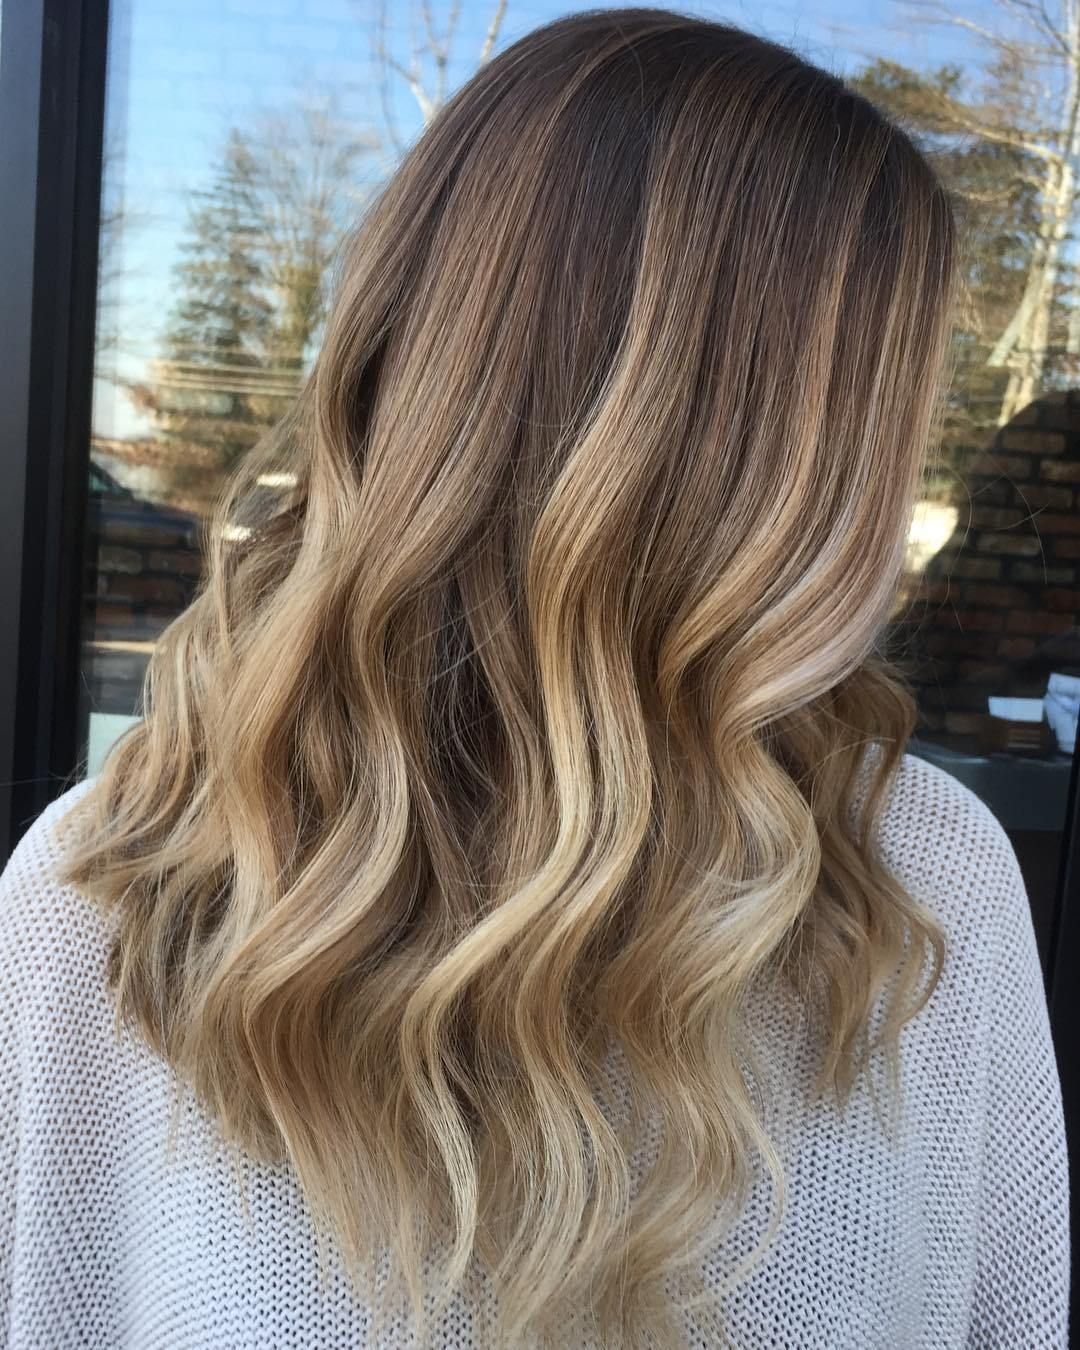 50 Ideas For Light Brown Hair With Highlights And Lowlights Brown Blonde Hair Brown Hair Balayage Brown Hair With Highlights And Lowlights